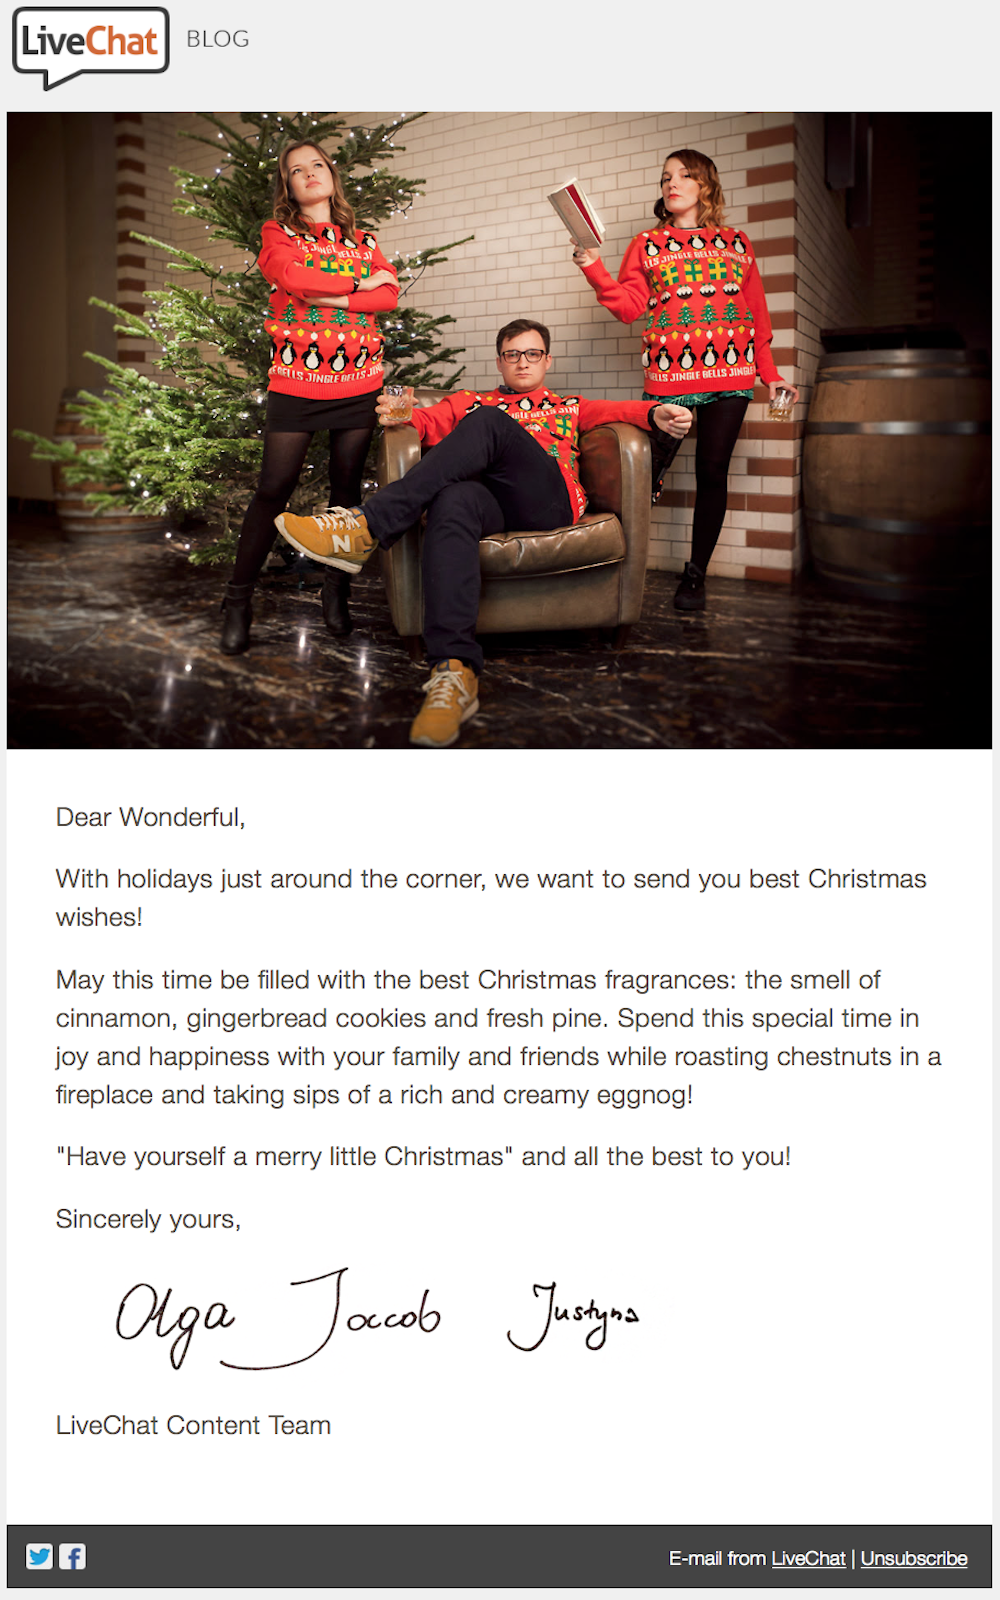 Livechat personalized christmas email